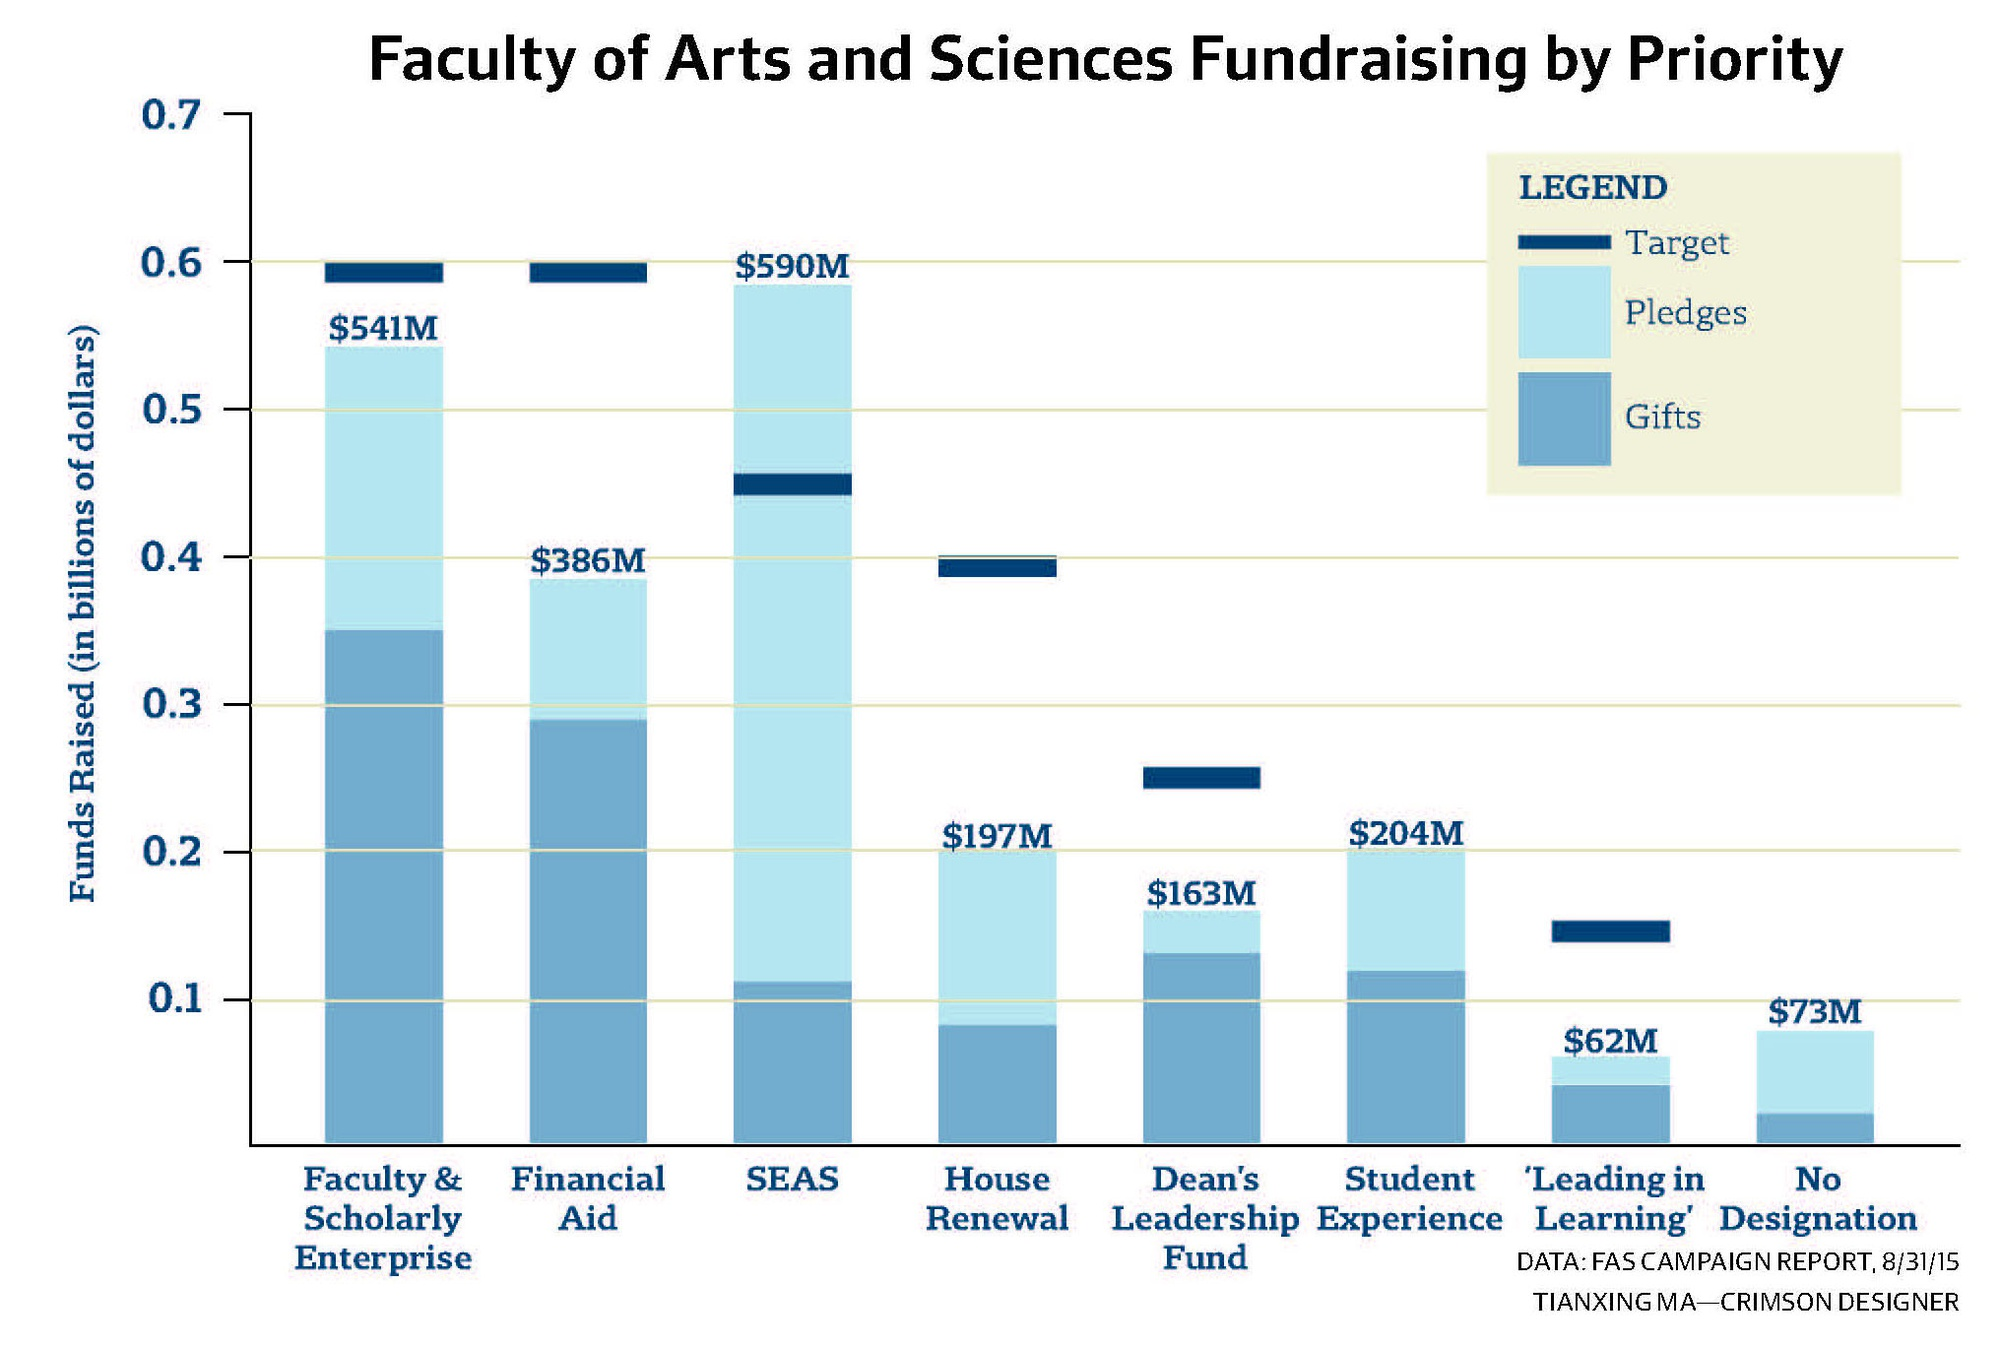 While fundraising for the School of Engineering and Applied Sciences has far exceeded its goal, some campaign priorities—such as House renewal and financial aid—lag, according to an internal August report on Faculty of Arts and Sciences campaign progress.